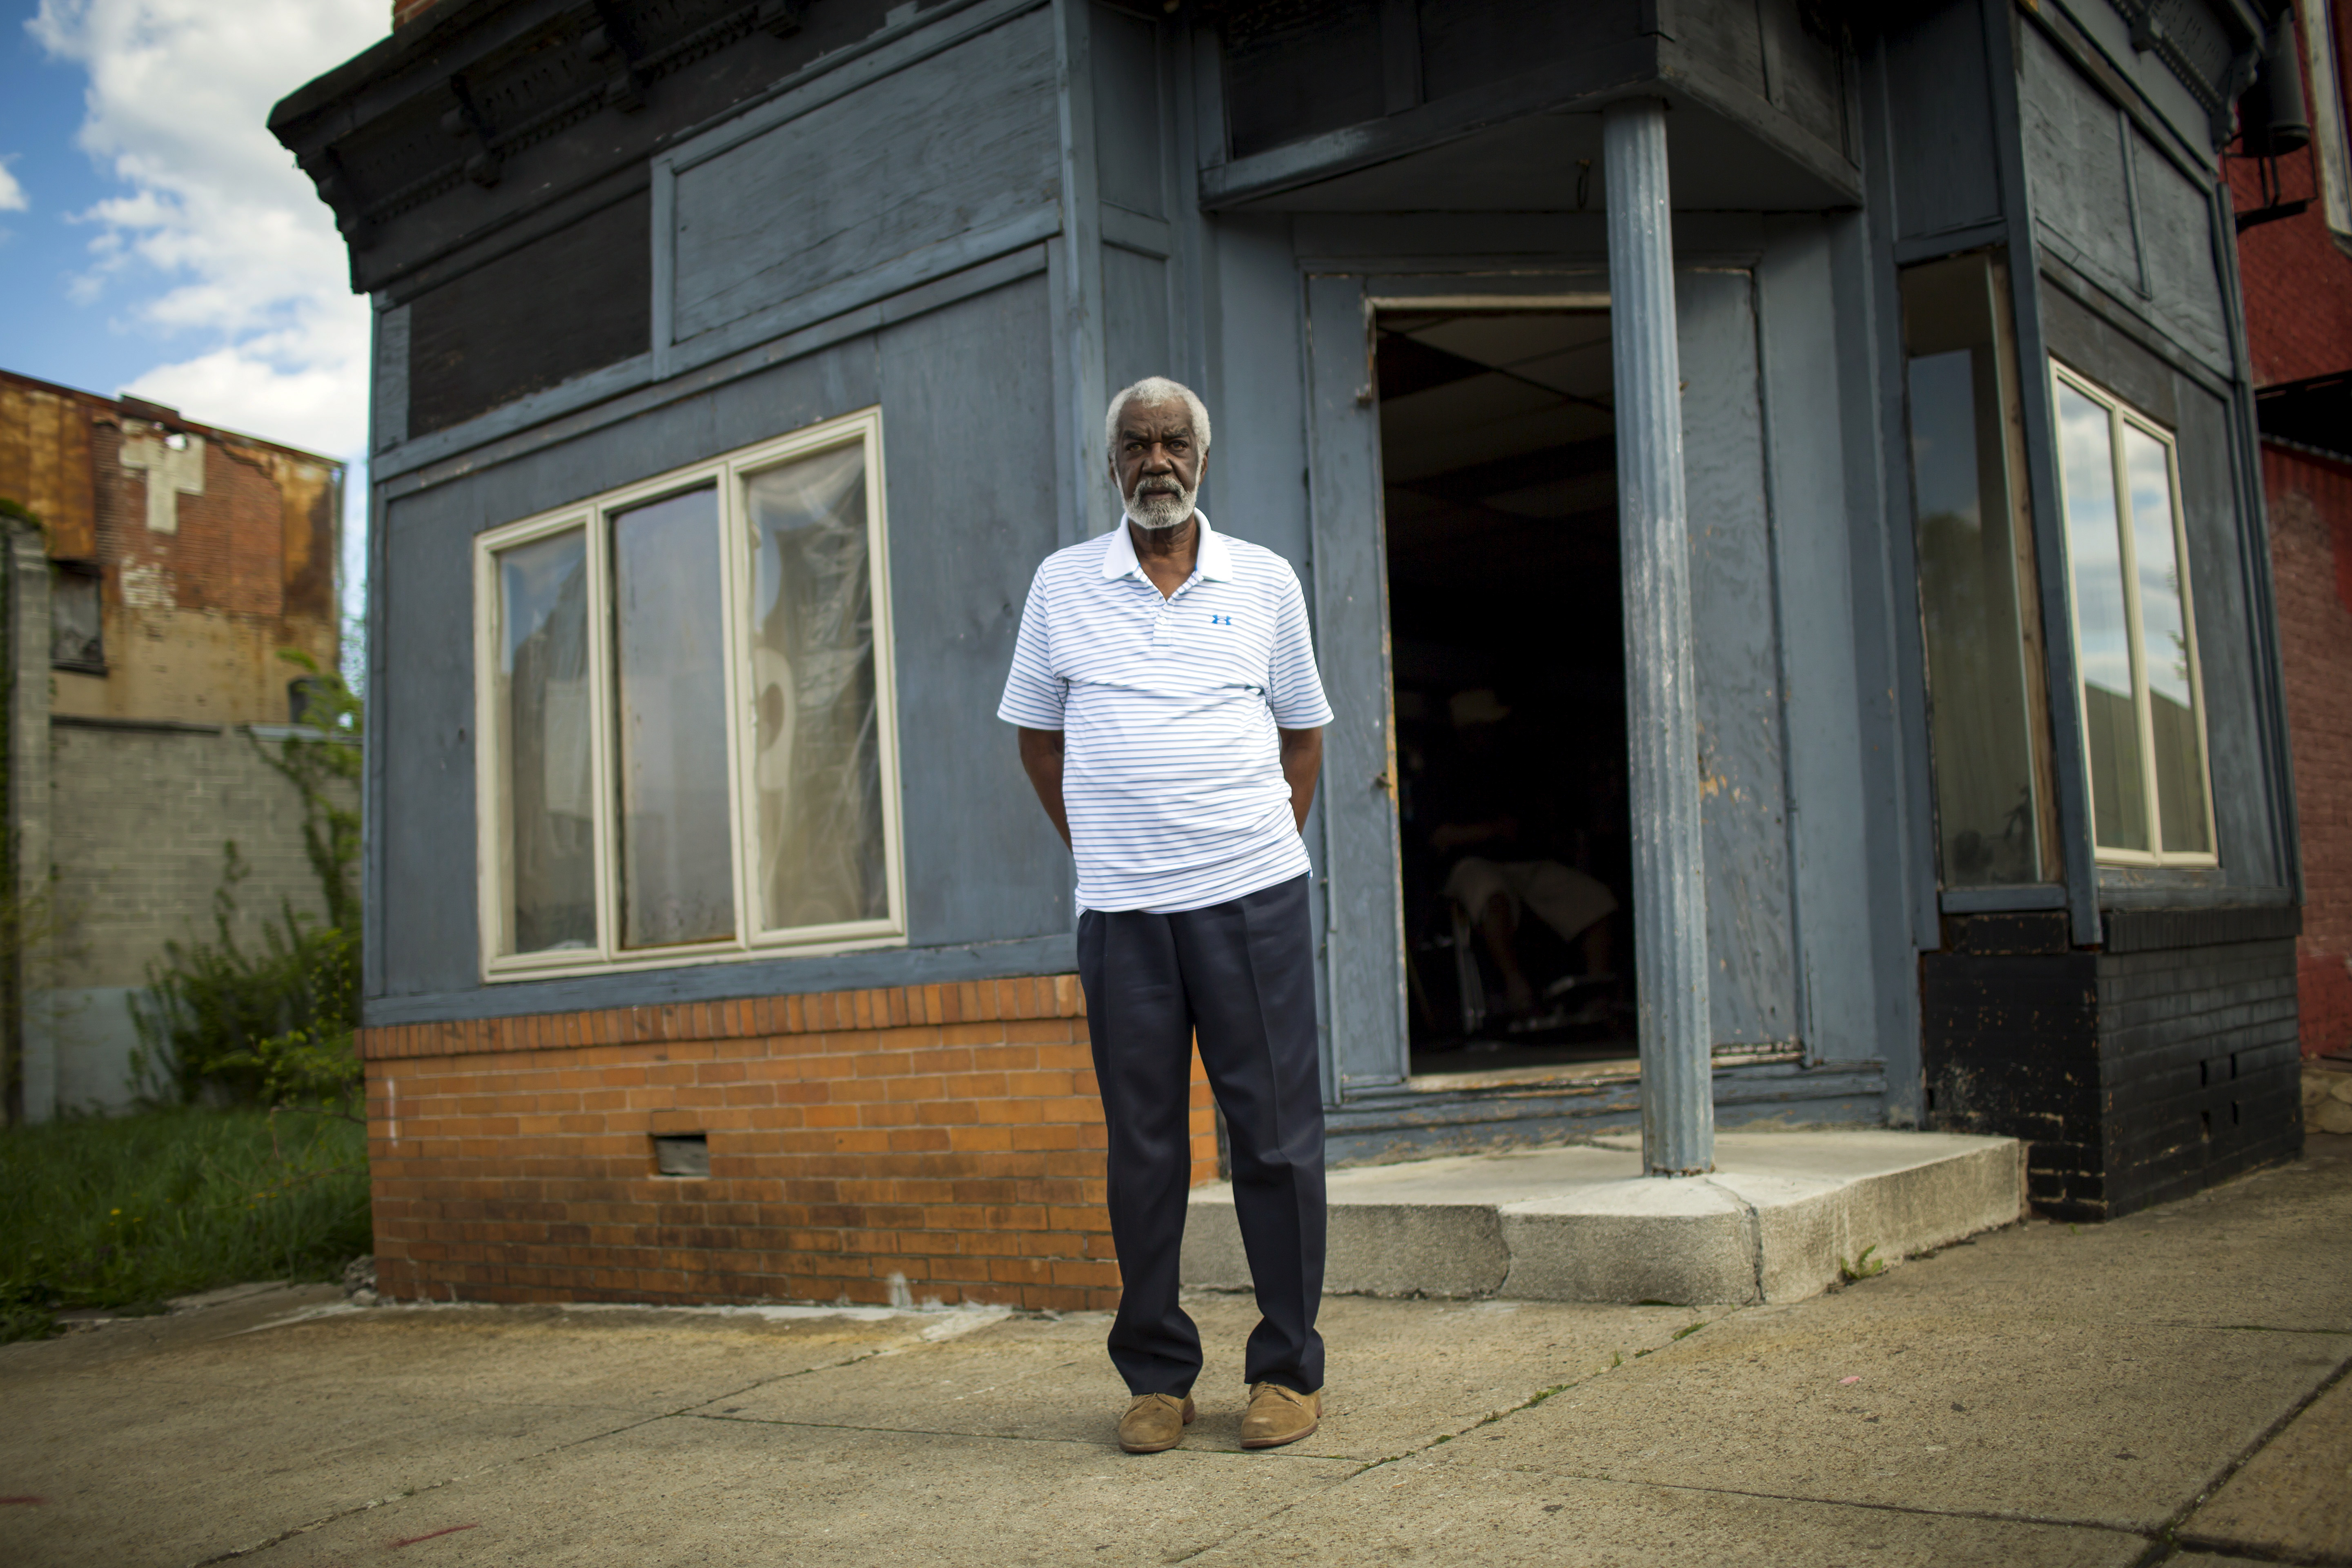 Lenny Clay stands outside his barbershop in Baltimore, Maryland April 29, 2015. In 1961, when Clay opened Lenny's House of Naturals in this corner storefront, the neighborhood was busy, bright, full of hard-working black families and black-owned businesses. And Clay's barbershop was at the center of things. Picture taken April 29. To match Insight USA-POLICE/BALTIMORE-BARBER   - GF10000078243